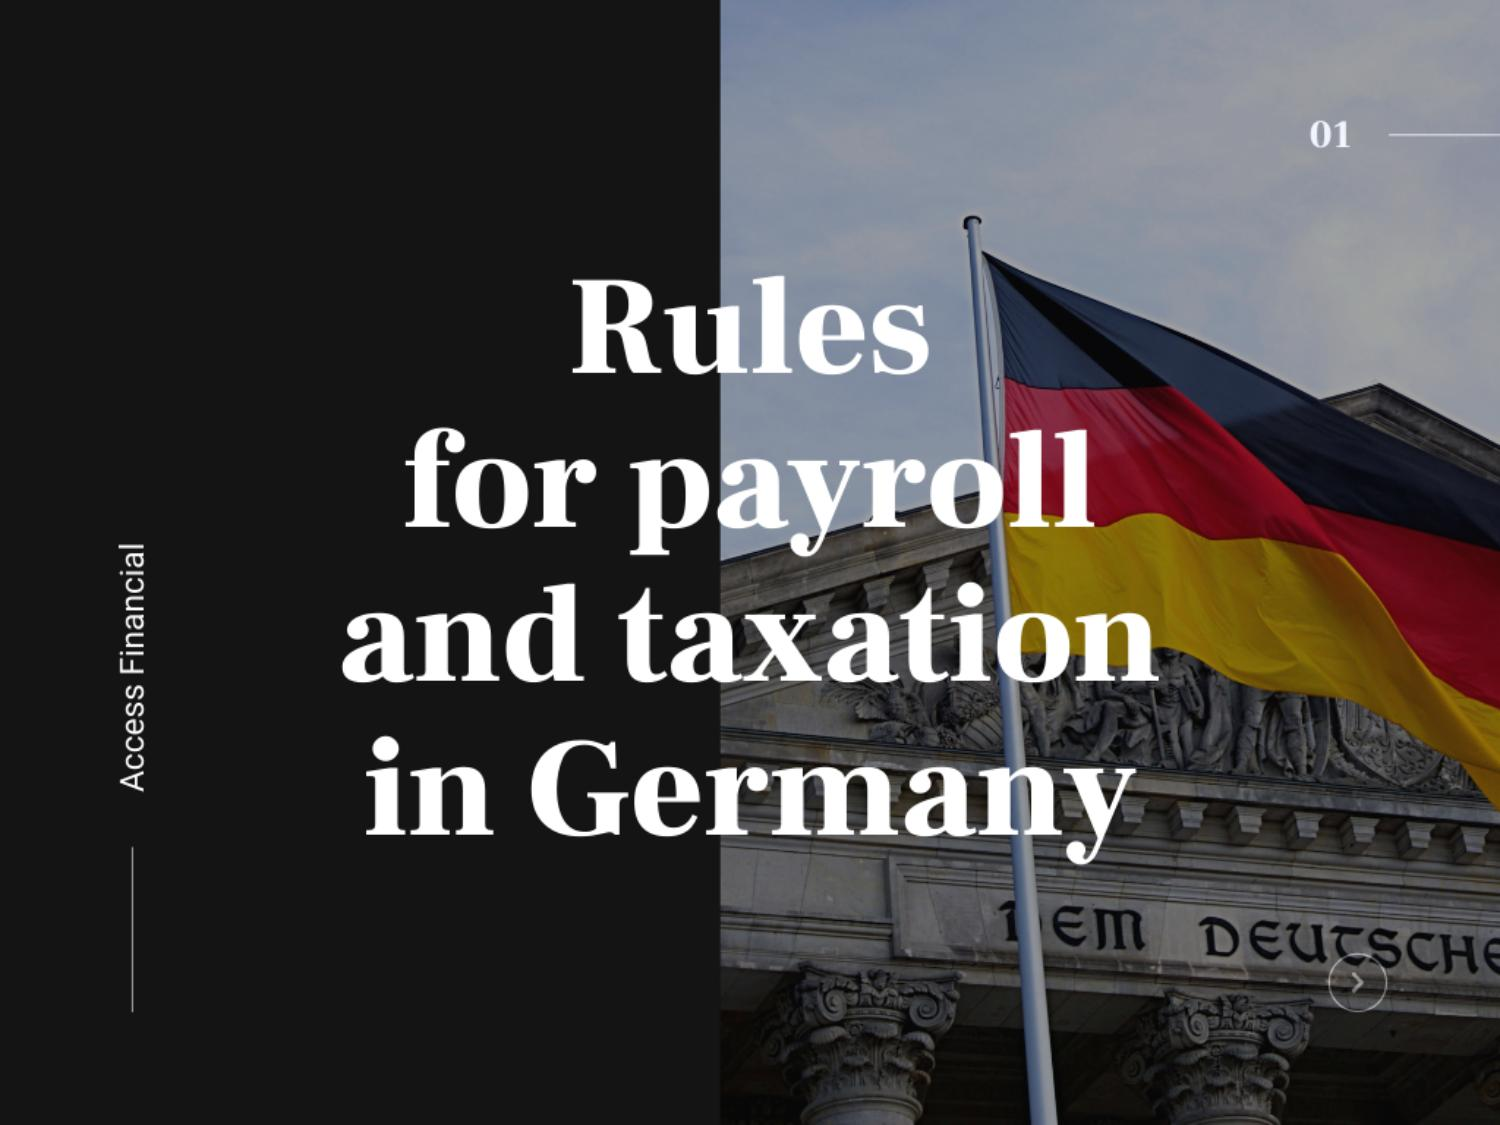 Rules for payroll and taxation in Germany